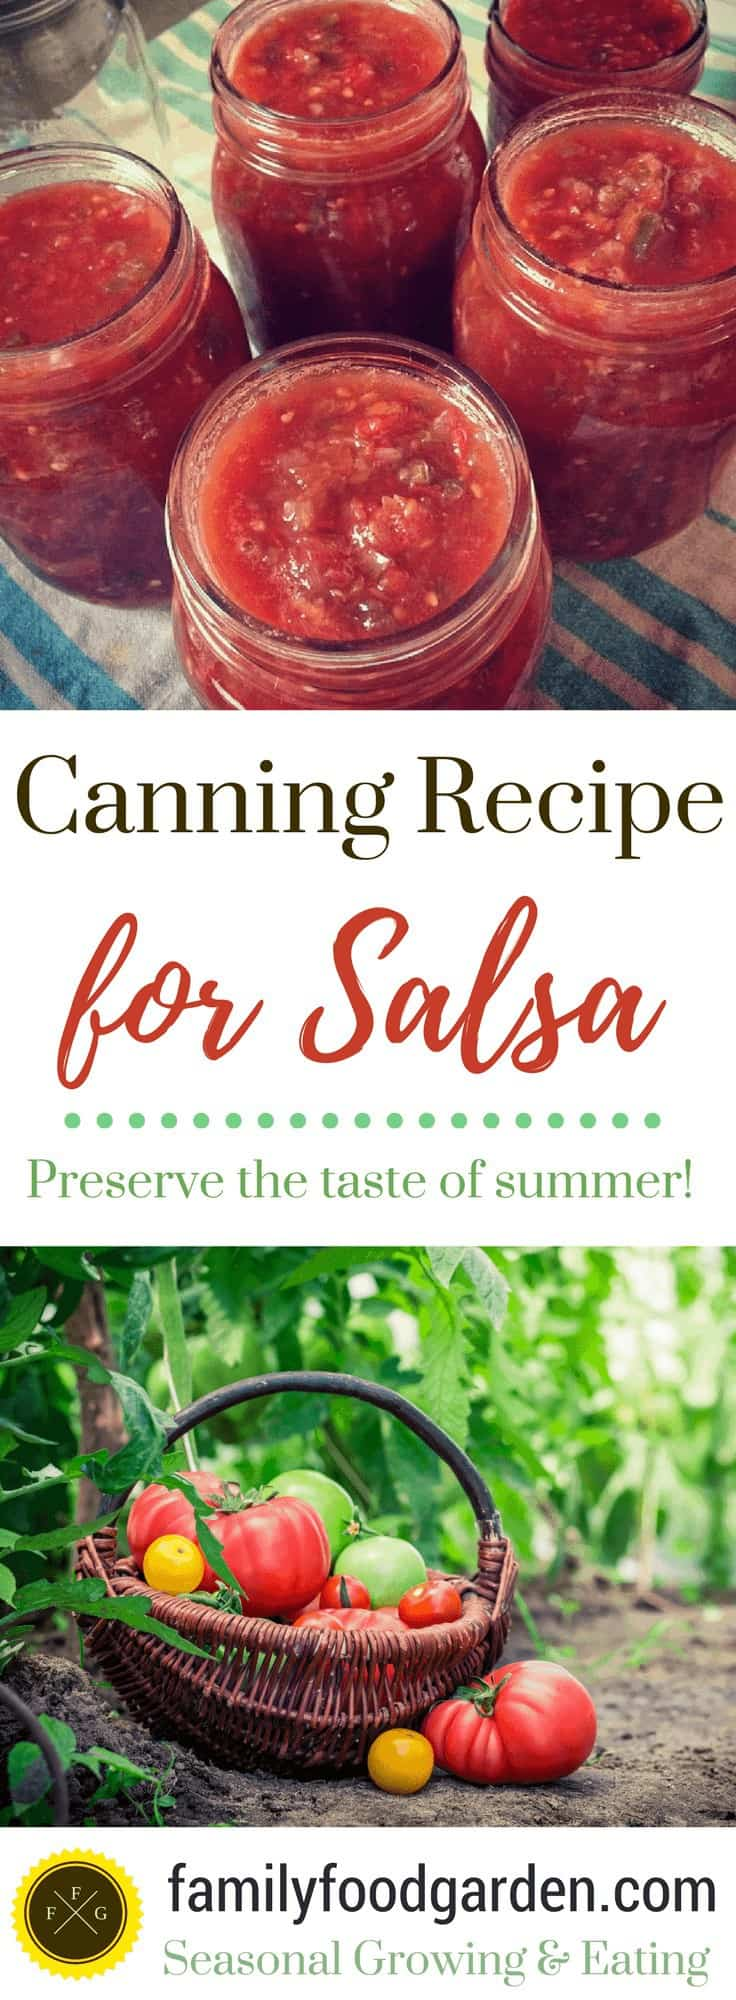 Tomato Salsa Recipe for Canning